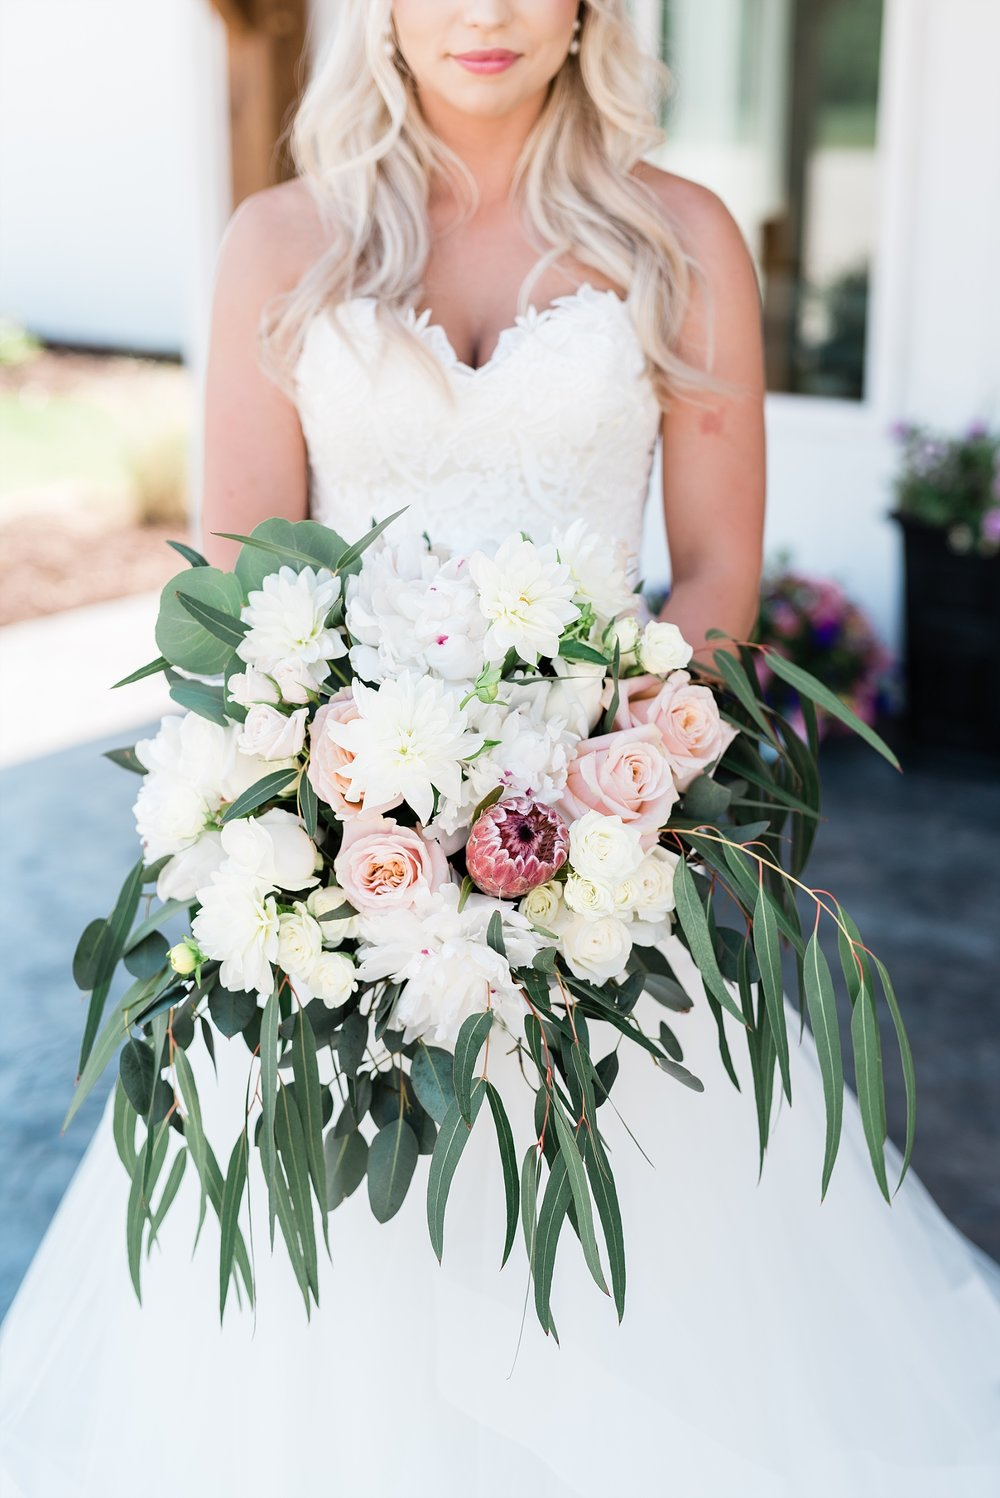 Stunning Heartfelt, Elegant, Fine Art, Chic, Outdoor Spring Wedding with Blush, Cream, Greenery, Rose Gold, and Sequins at Emerson Fields Venue by Kelsi Kliethermes Photography_0020.jpg